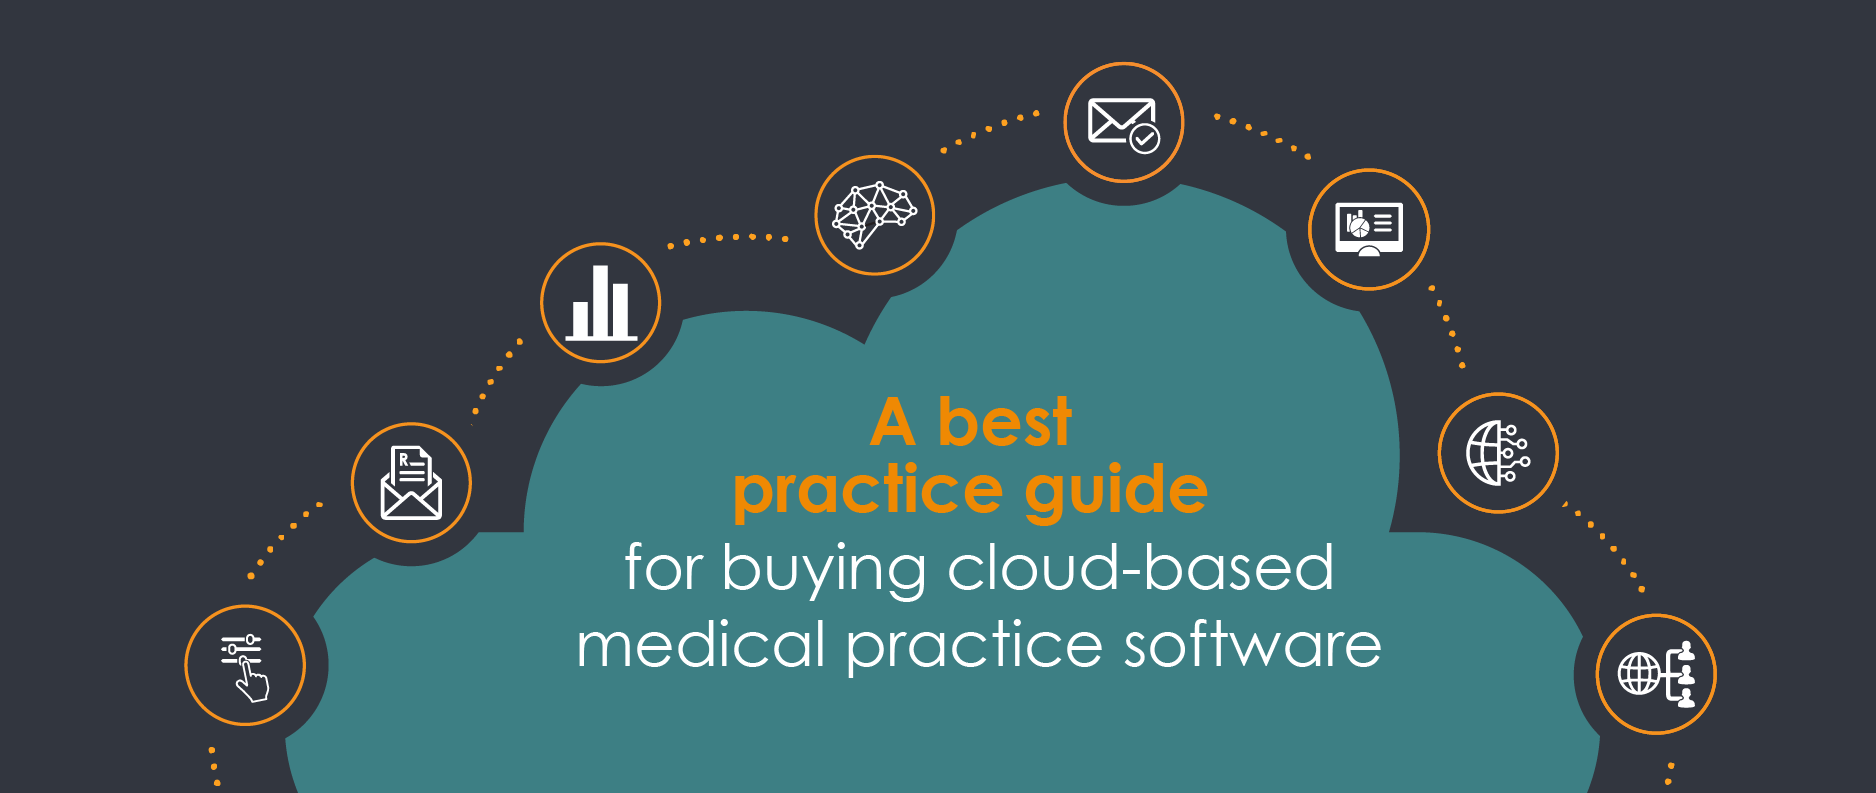 A best practice guide for buying cloud-based medical practice software